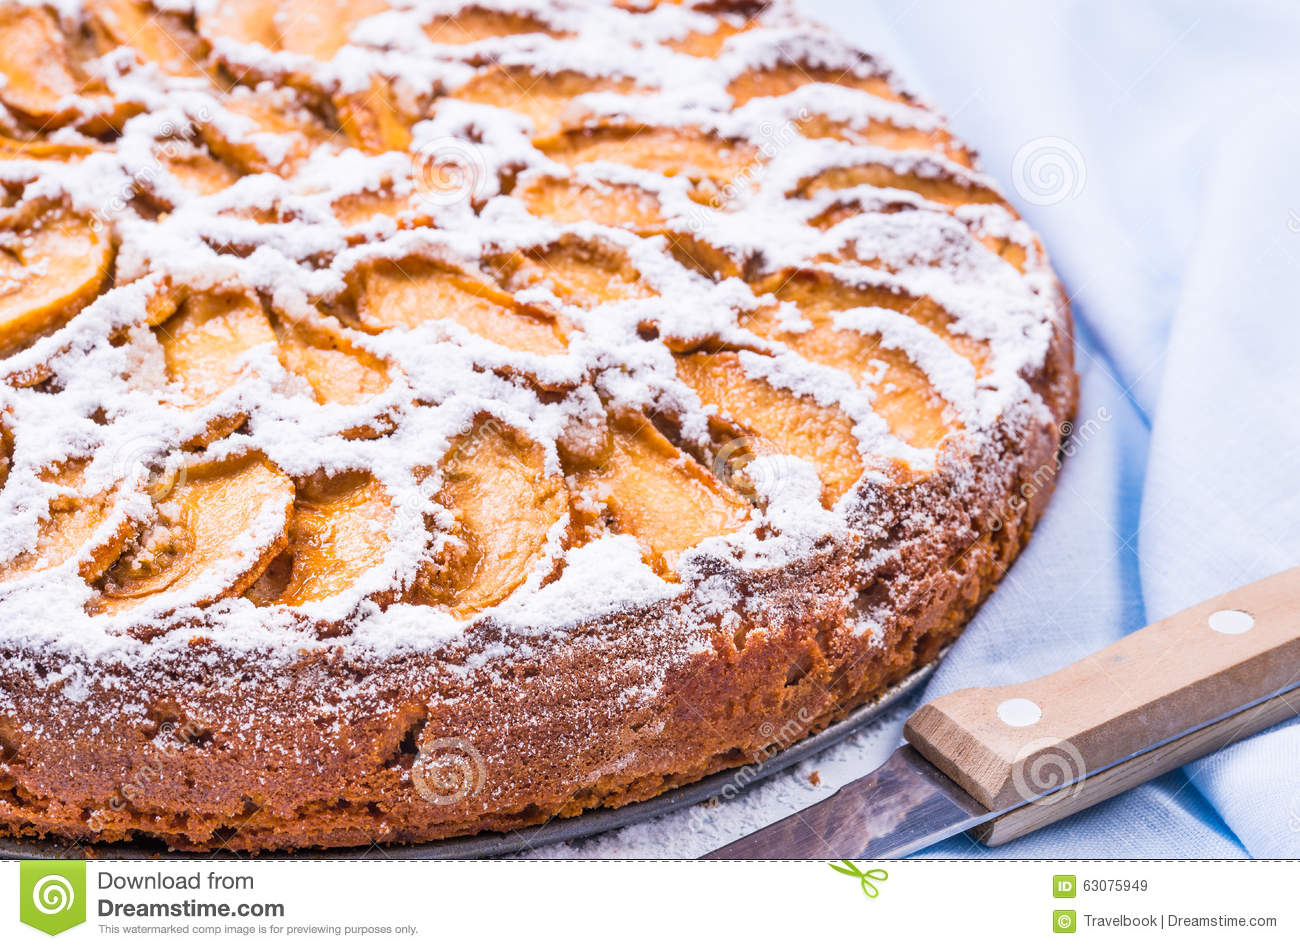 Download Dessert De Tarte Aux Pommes Gâteau De Fruit Image stock - Image du fruit, cuit: 63075949